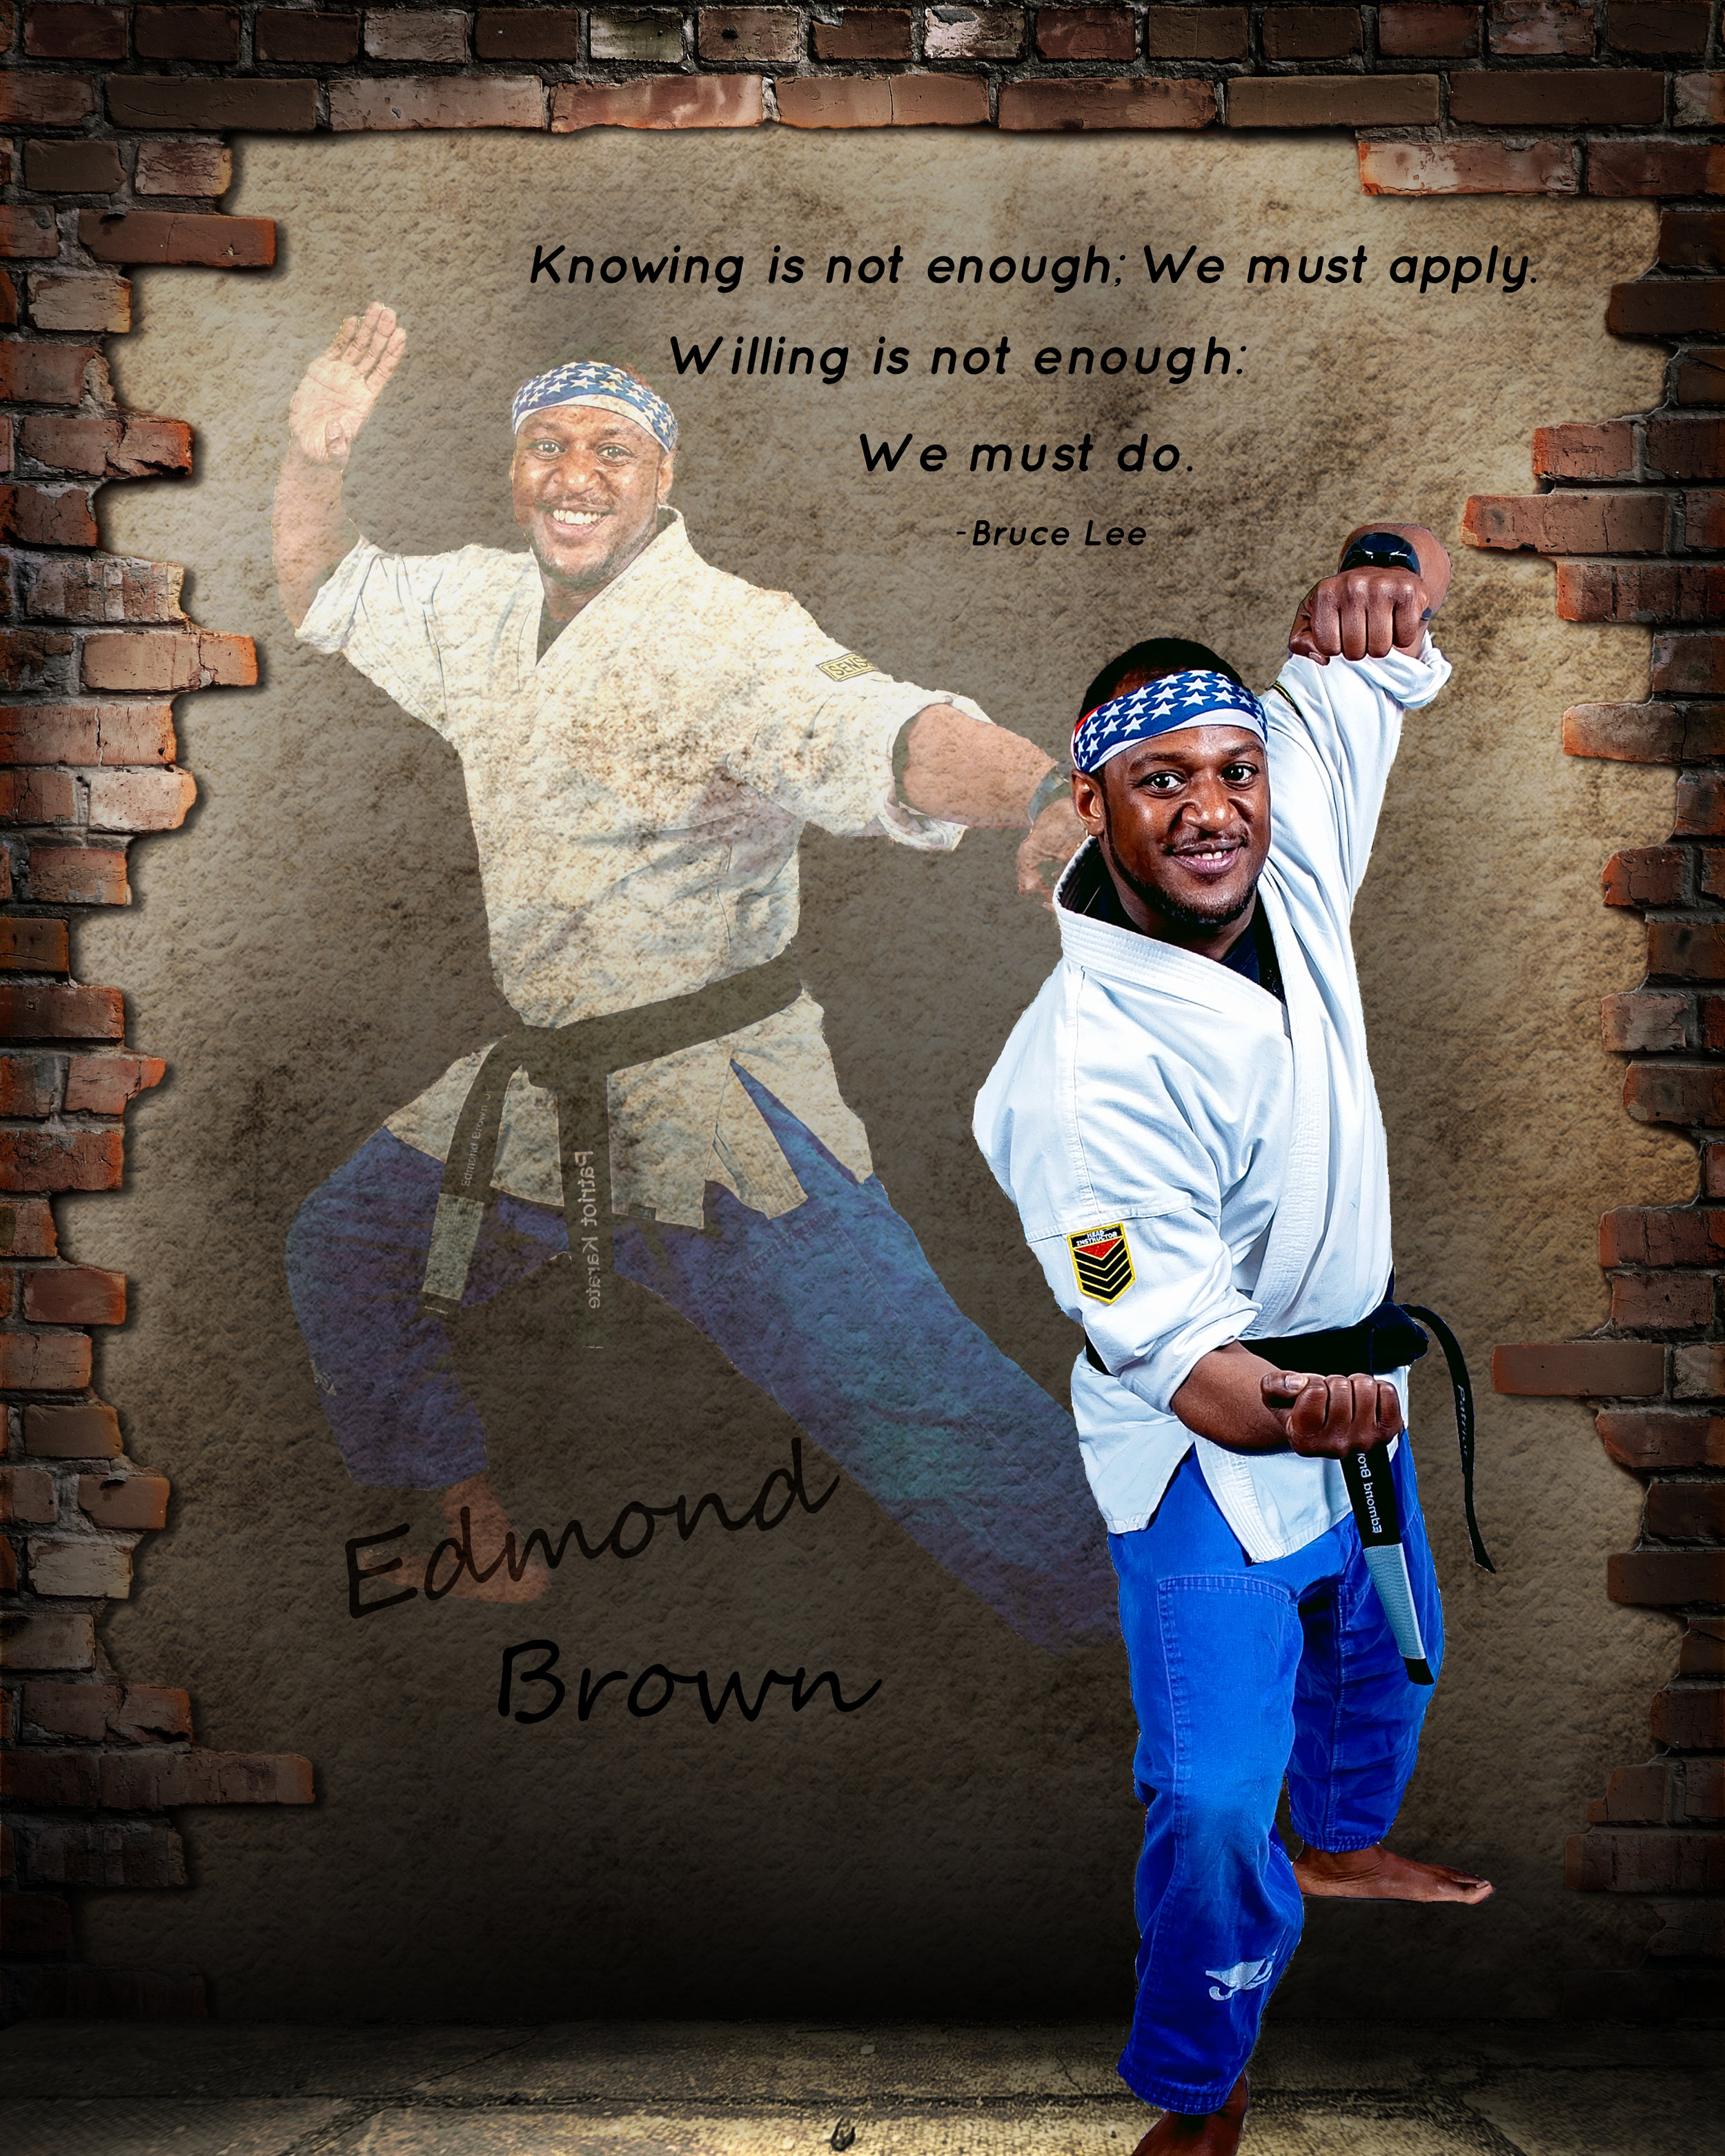 Mr. Edmond Brown...    Mr. Edmond A.Brown Jr. started his Martial Arts journey in the summer of 2002. Ever since he was a young man, he always knew that Martial Arts was a career driven path.He has been training for several years and is now a 5th Degree Black Belt in American Karate. He is also currently a blue belt in Brazilian Jiu Jitsu with hopes of earning his black belt in that Martial Art as well. He cares a lot about his students, parents, and staff. He hopes to create not only a karate school, but a Martial Art facility that caters to all people from different walks of life and help them reach a goal of becoming a black belt leader.